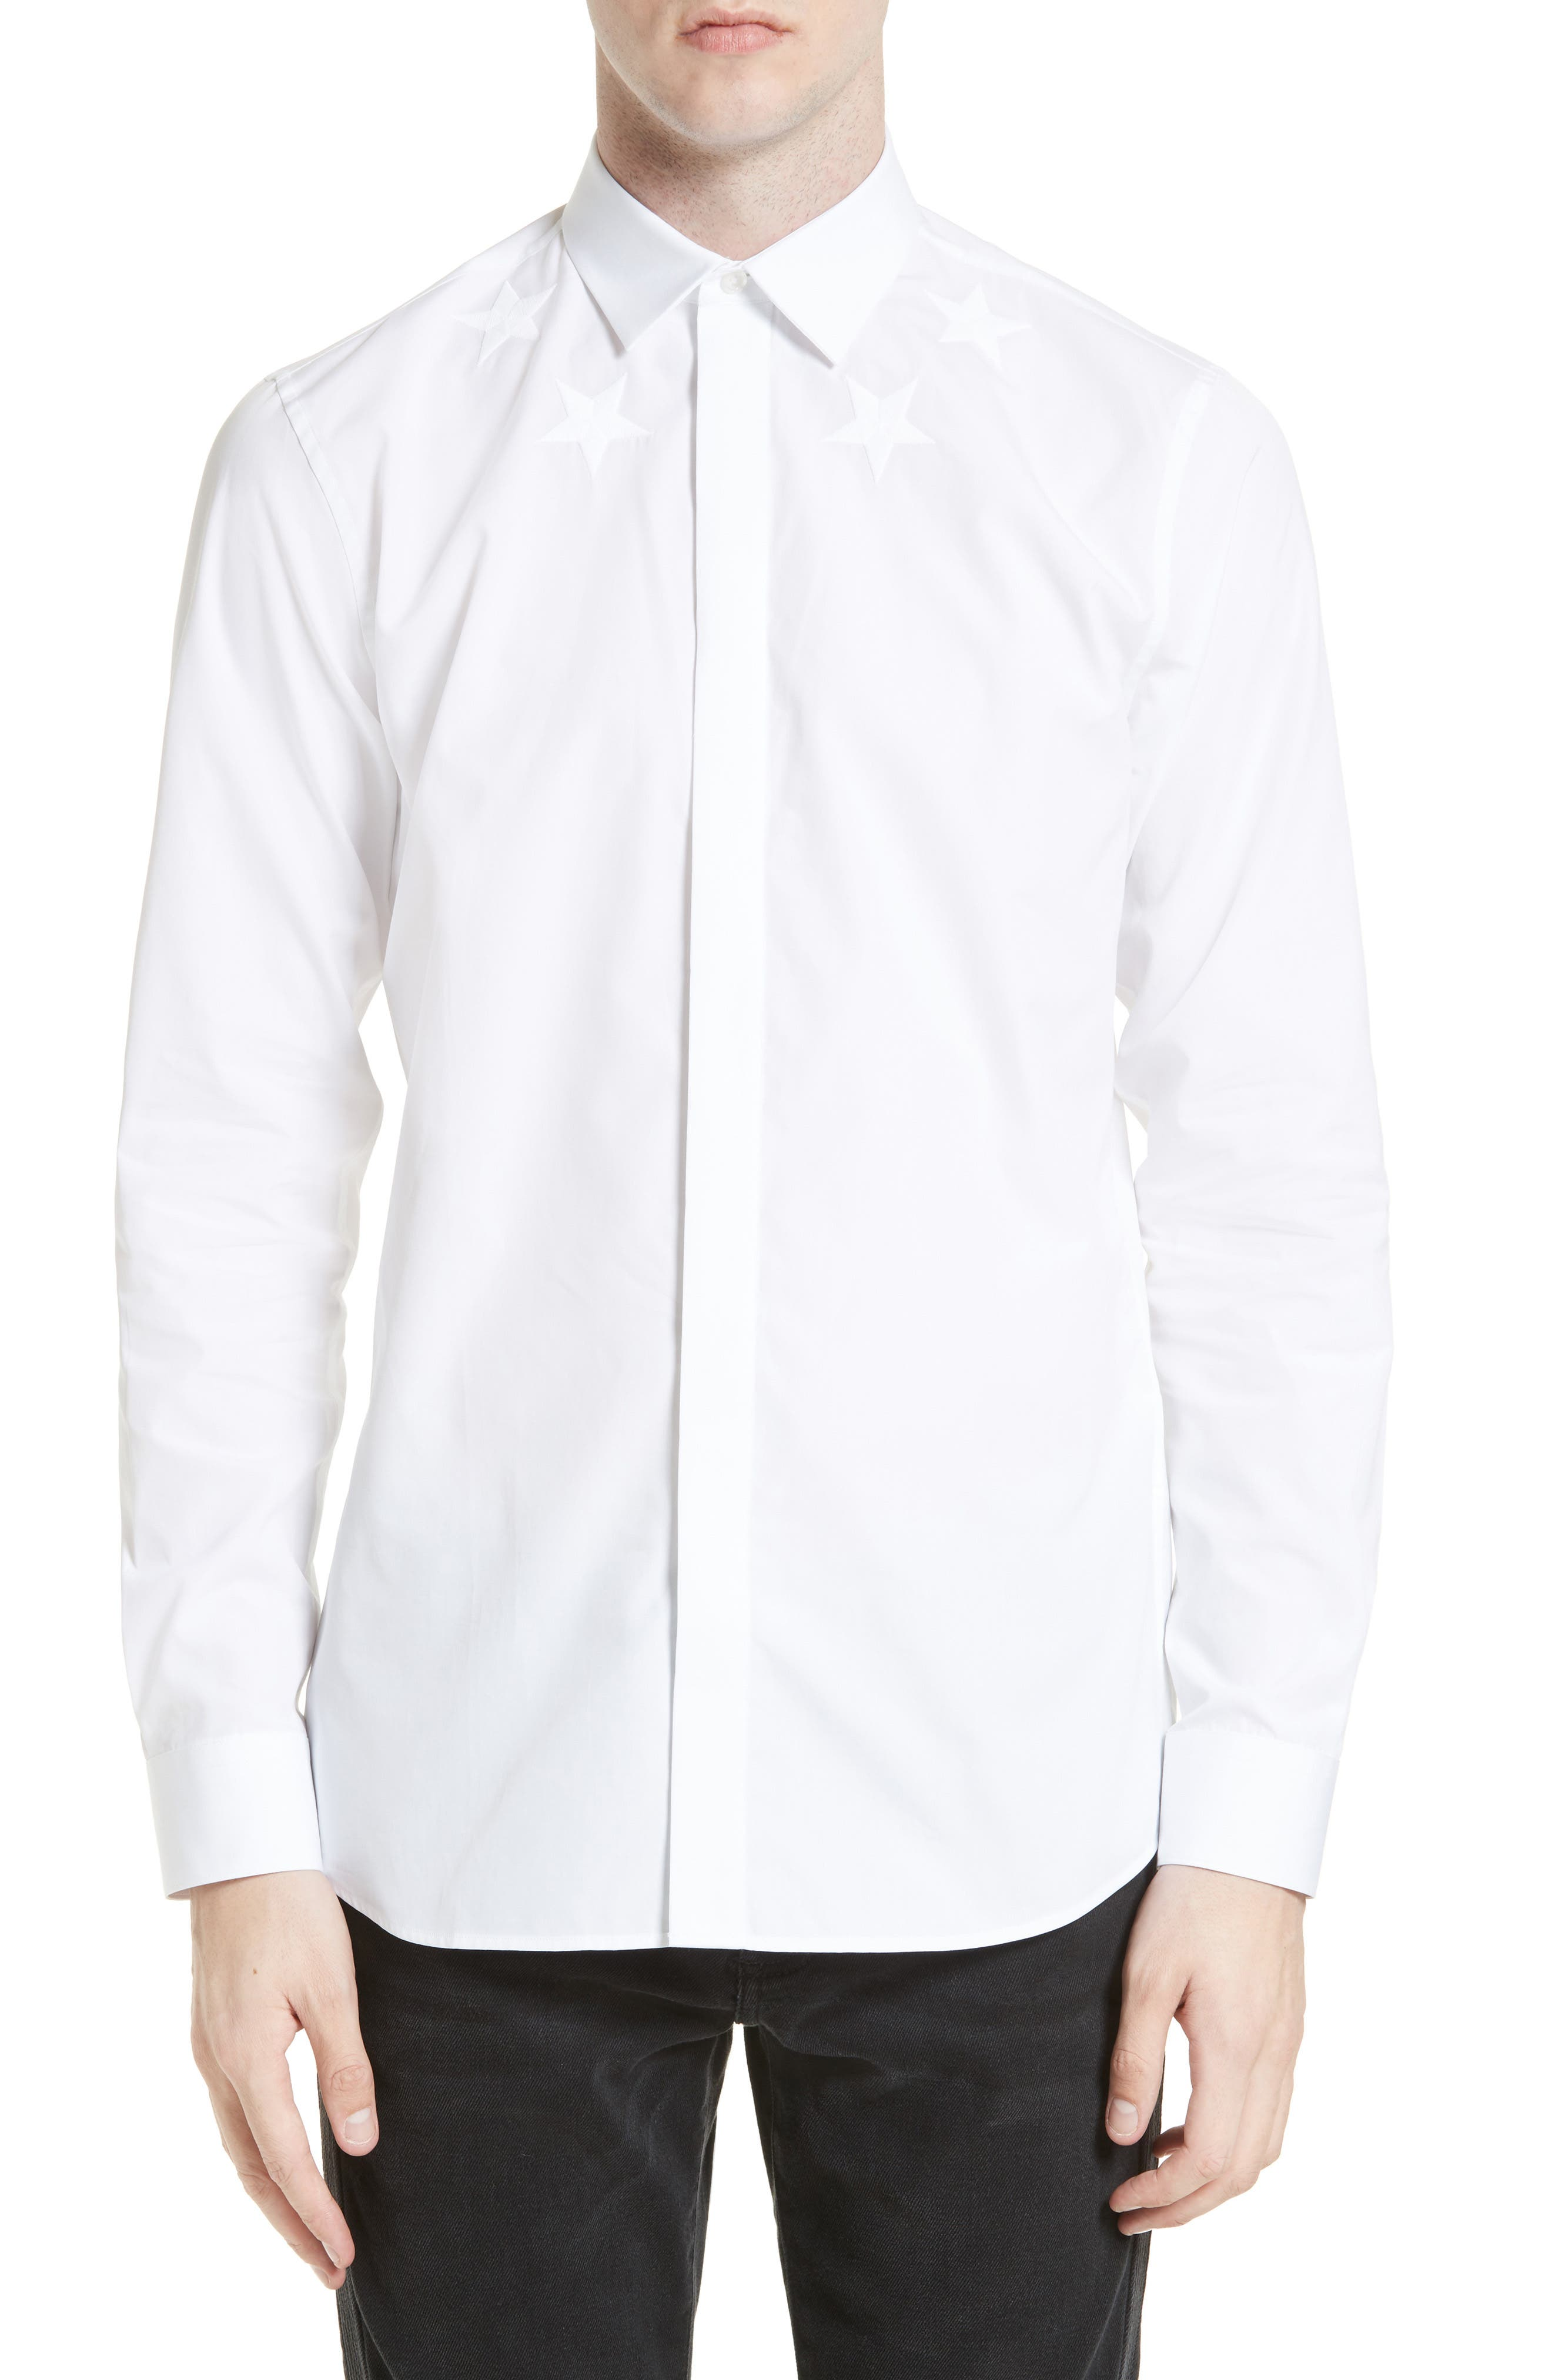 Givenchy Tonal Star Embroidered Sport Shirt